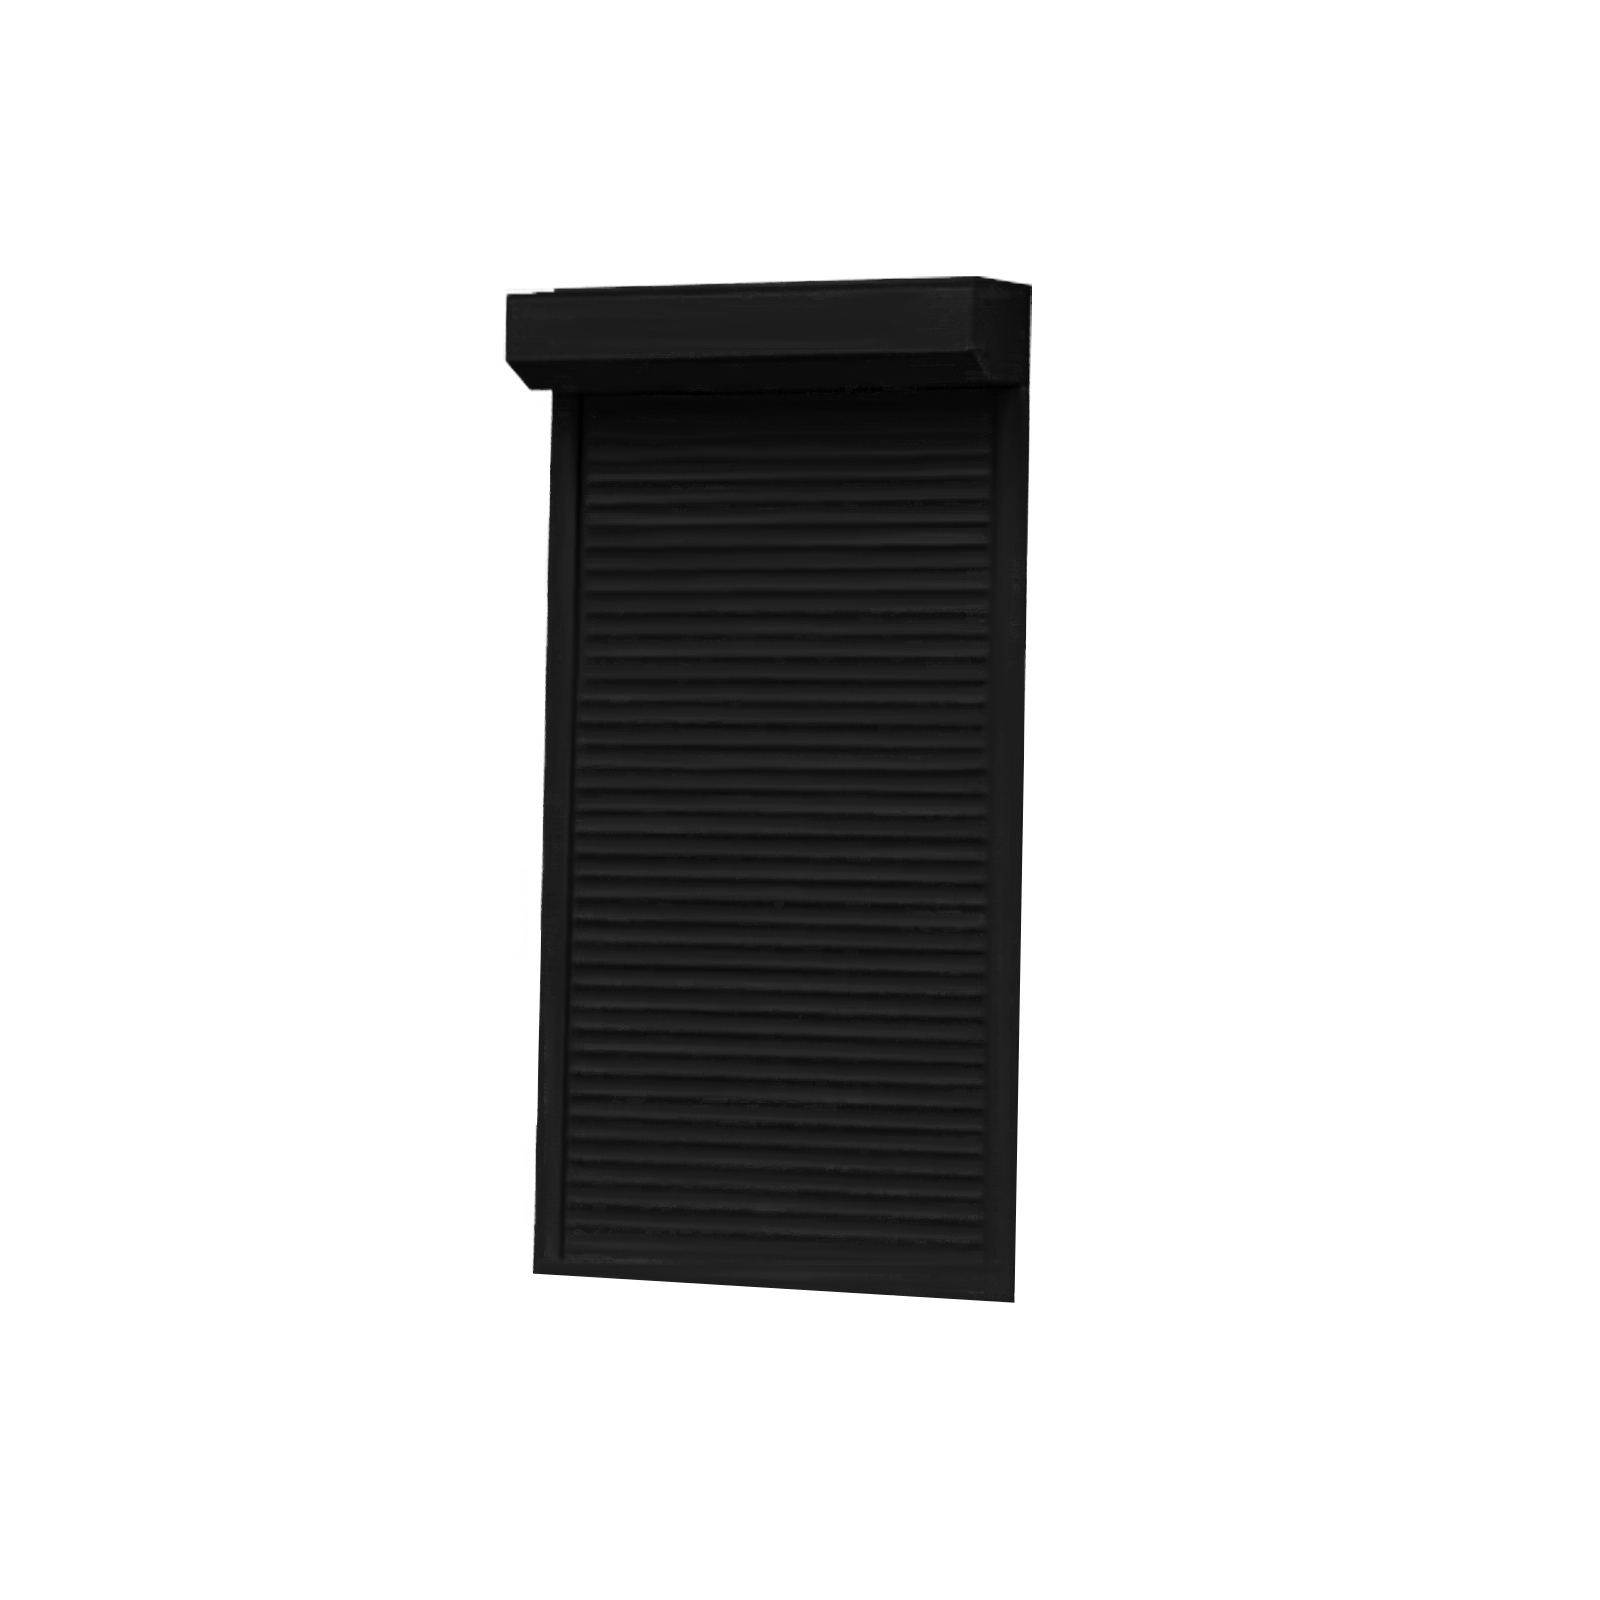 Everton 1000-1200mm H x 1601-1800mm W On-Wall Hardwired Roller Shutter